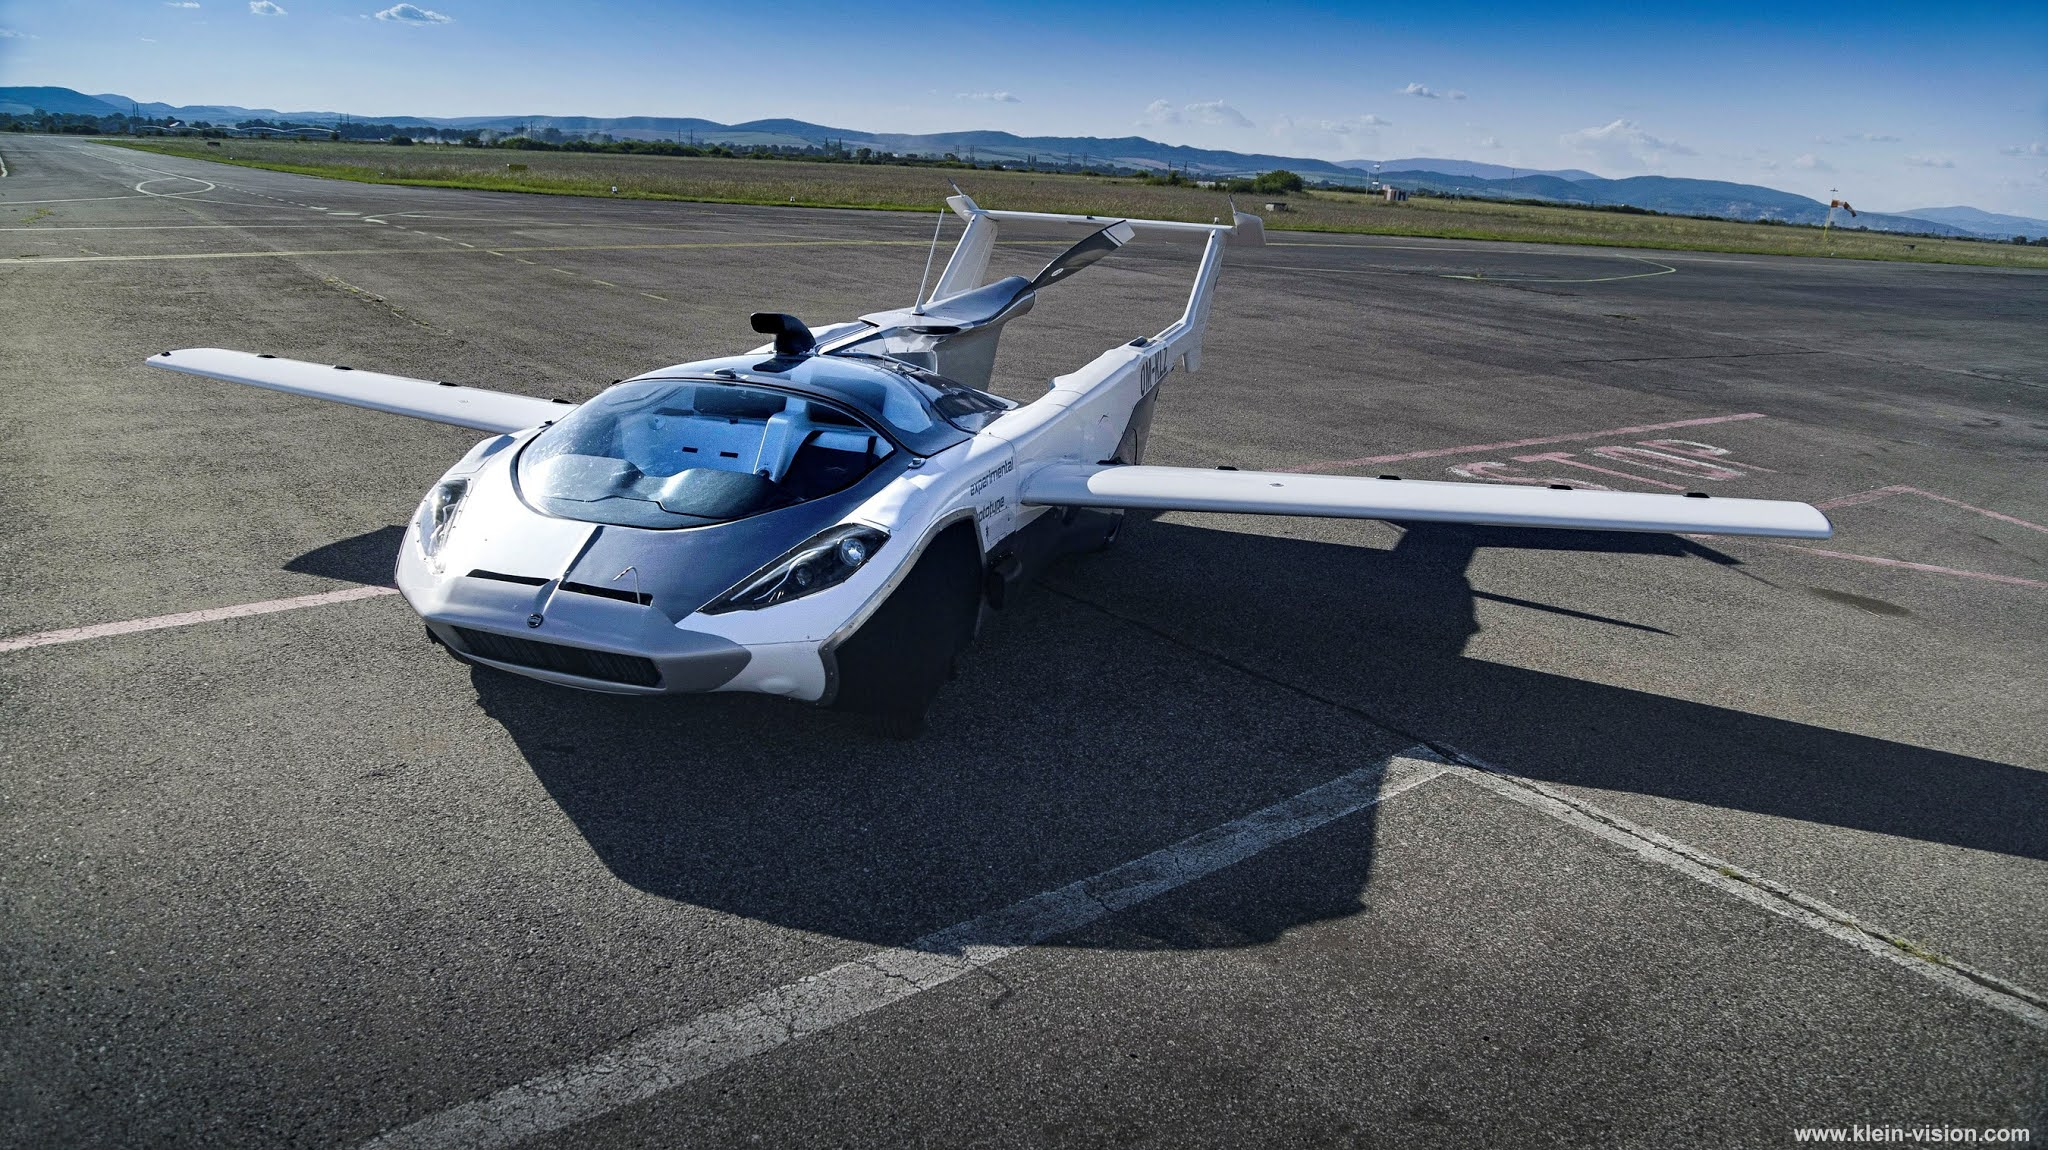 AirCar - The Flying Car Passed Flight Tests